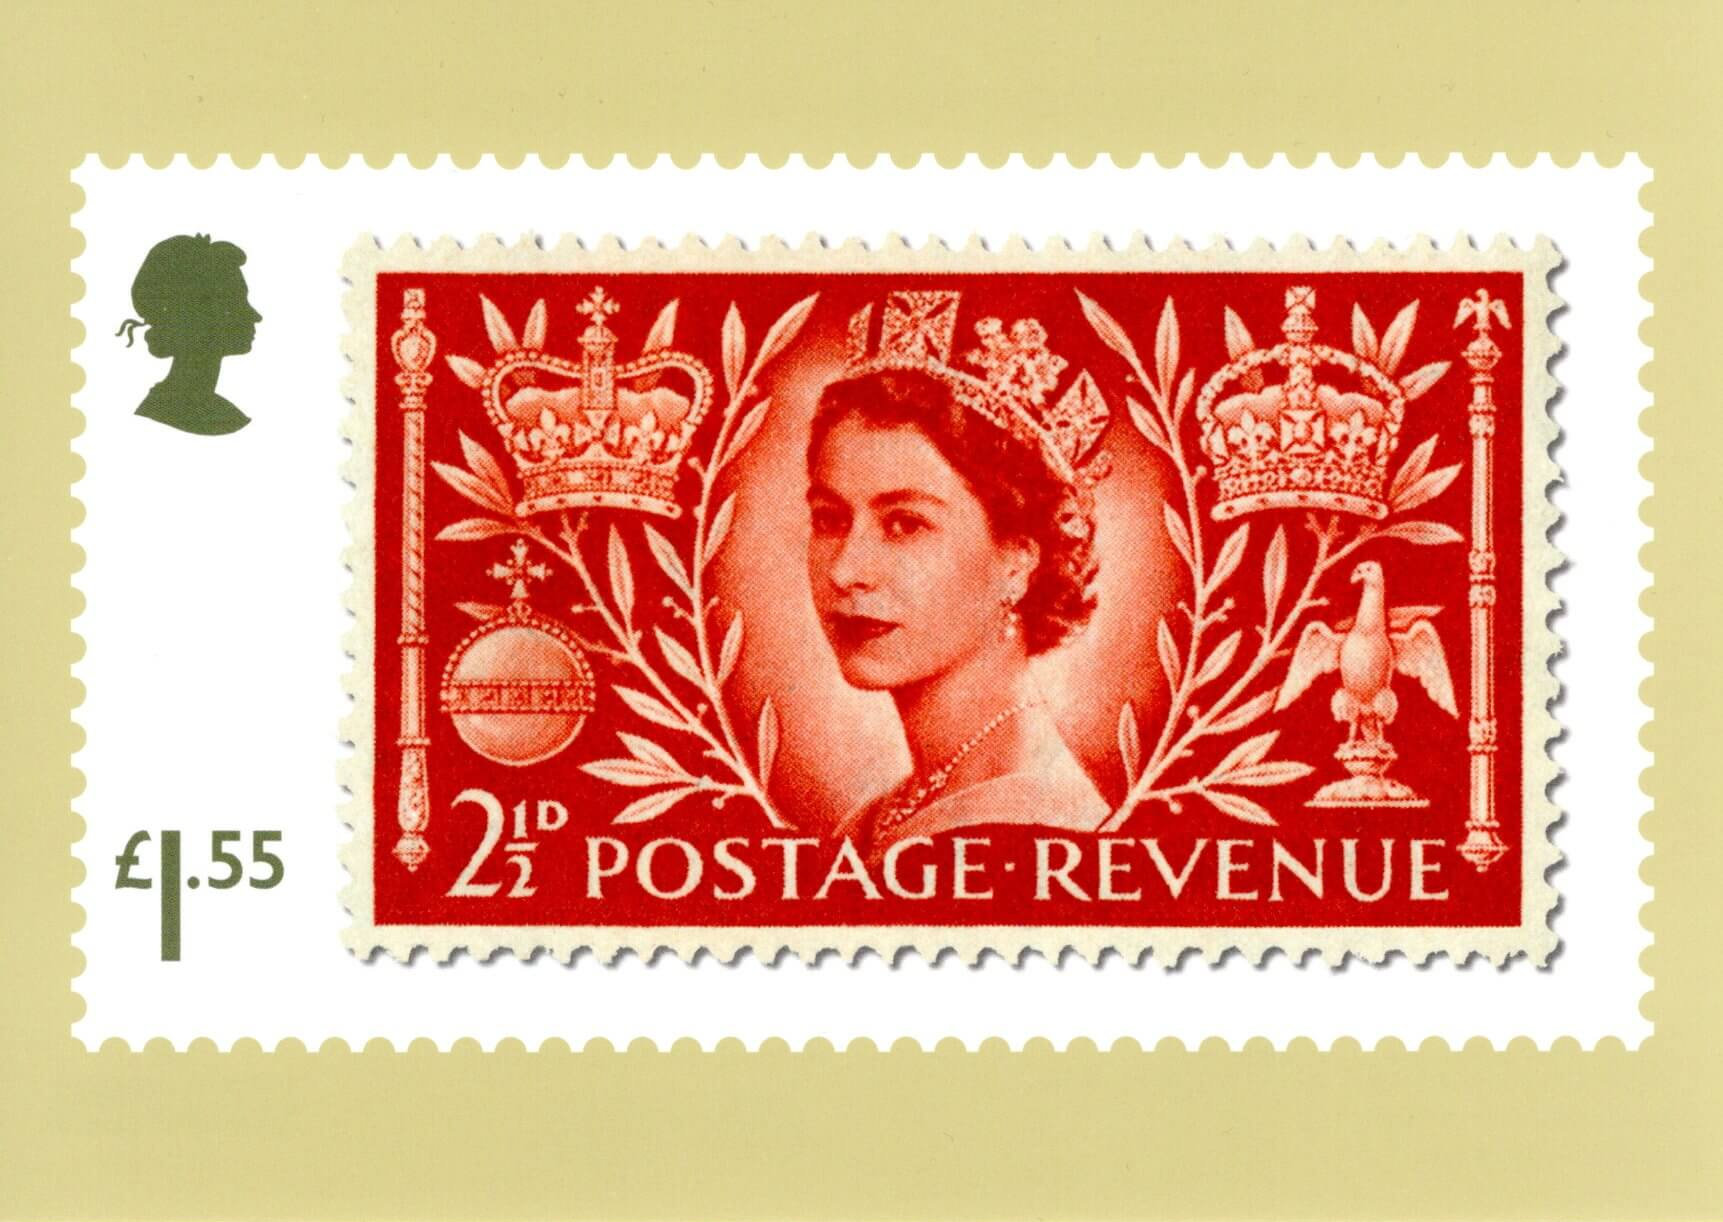 Great Britain - Stamp Classics (January 15, 2019) scarlet 2½d Queen Elizabeth II Coronation of 1952 PHQ card